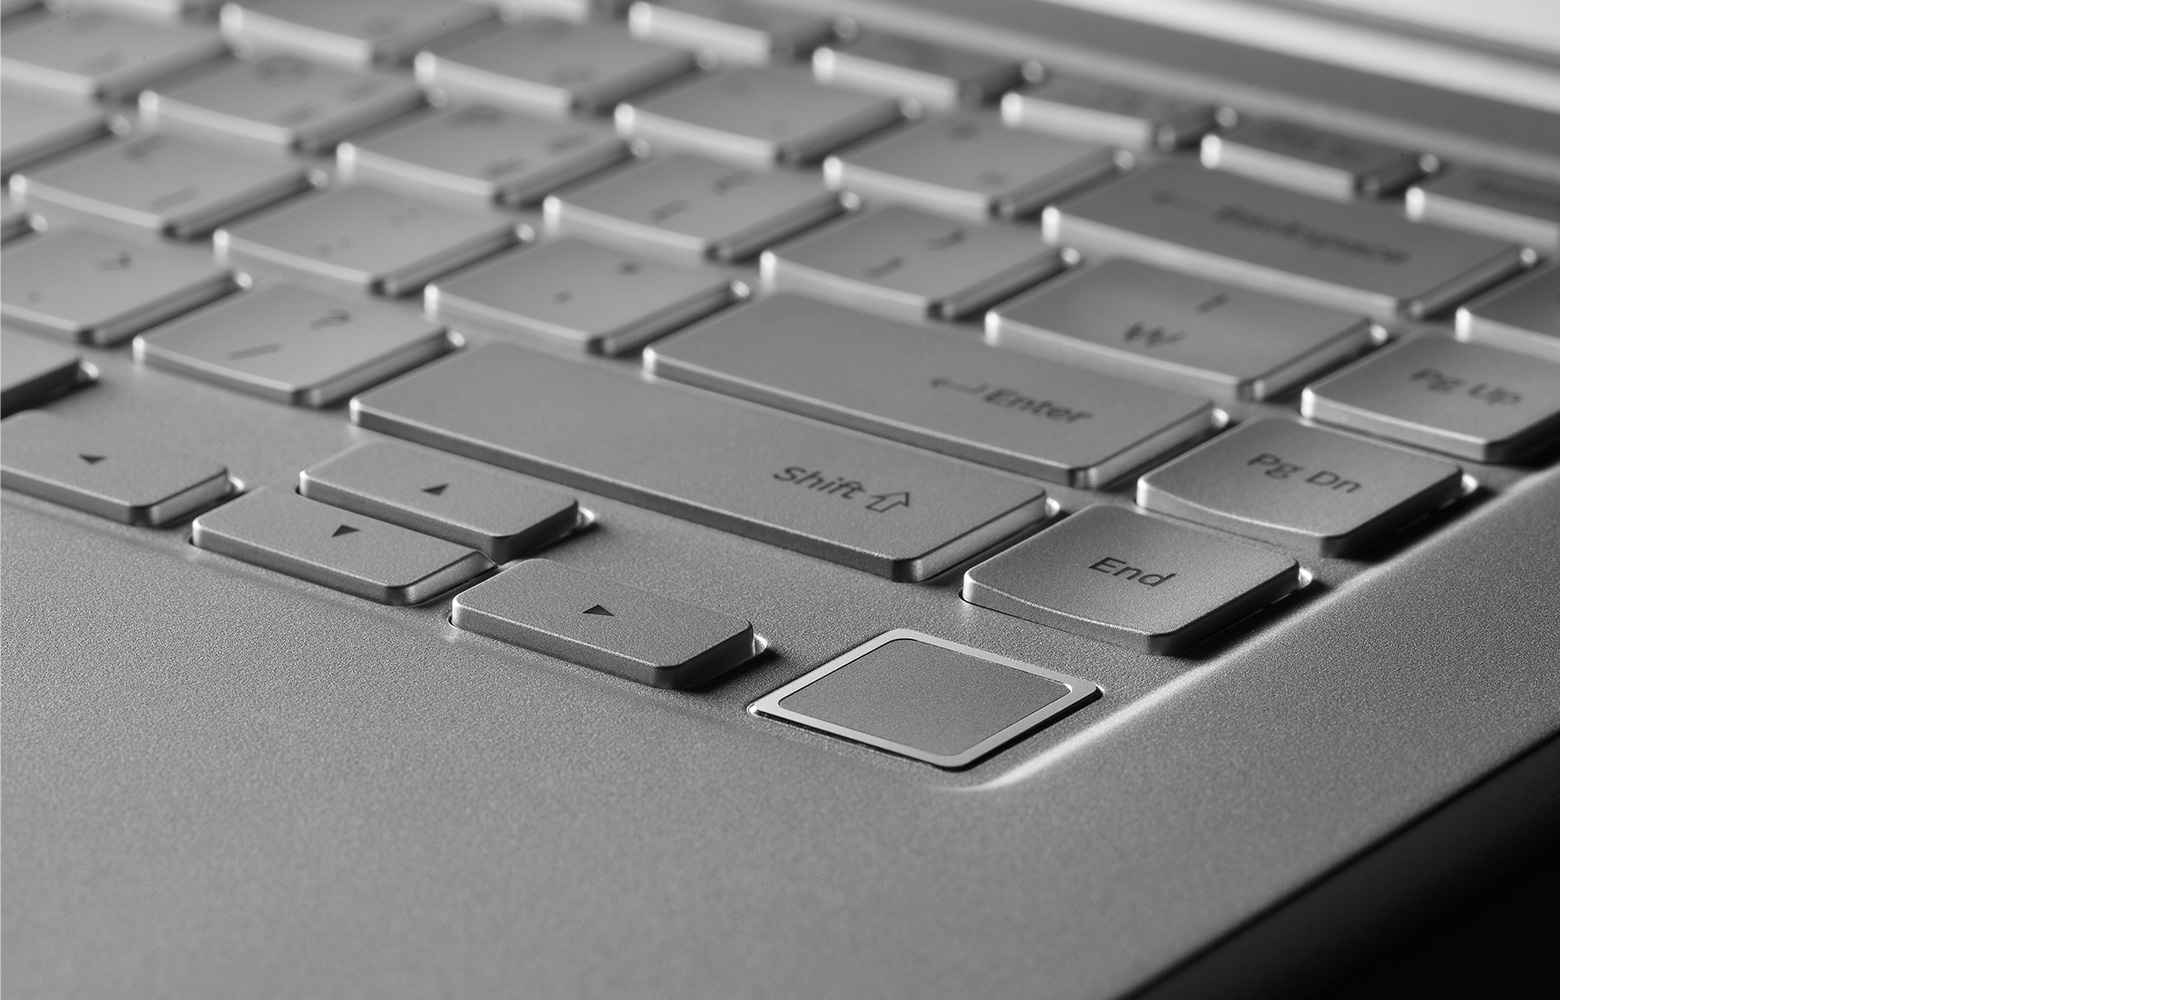 the definitive 9 the keyboard is probably the most engaging component of the laptop with that a decidedly curved design was chosen both for ergonomic